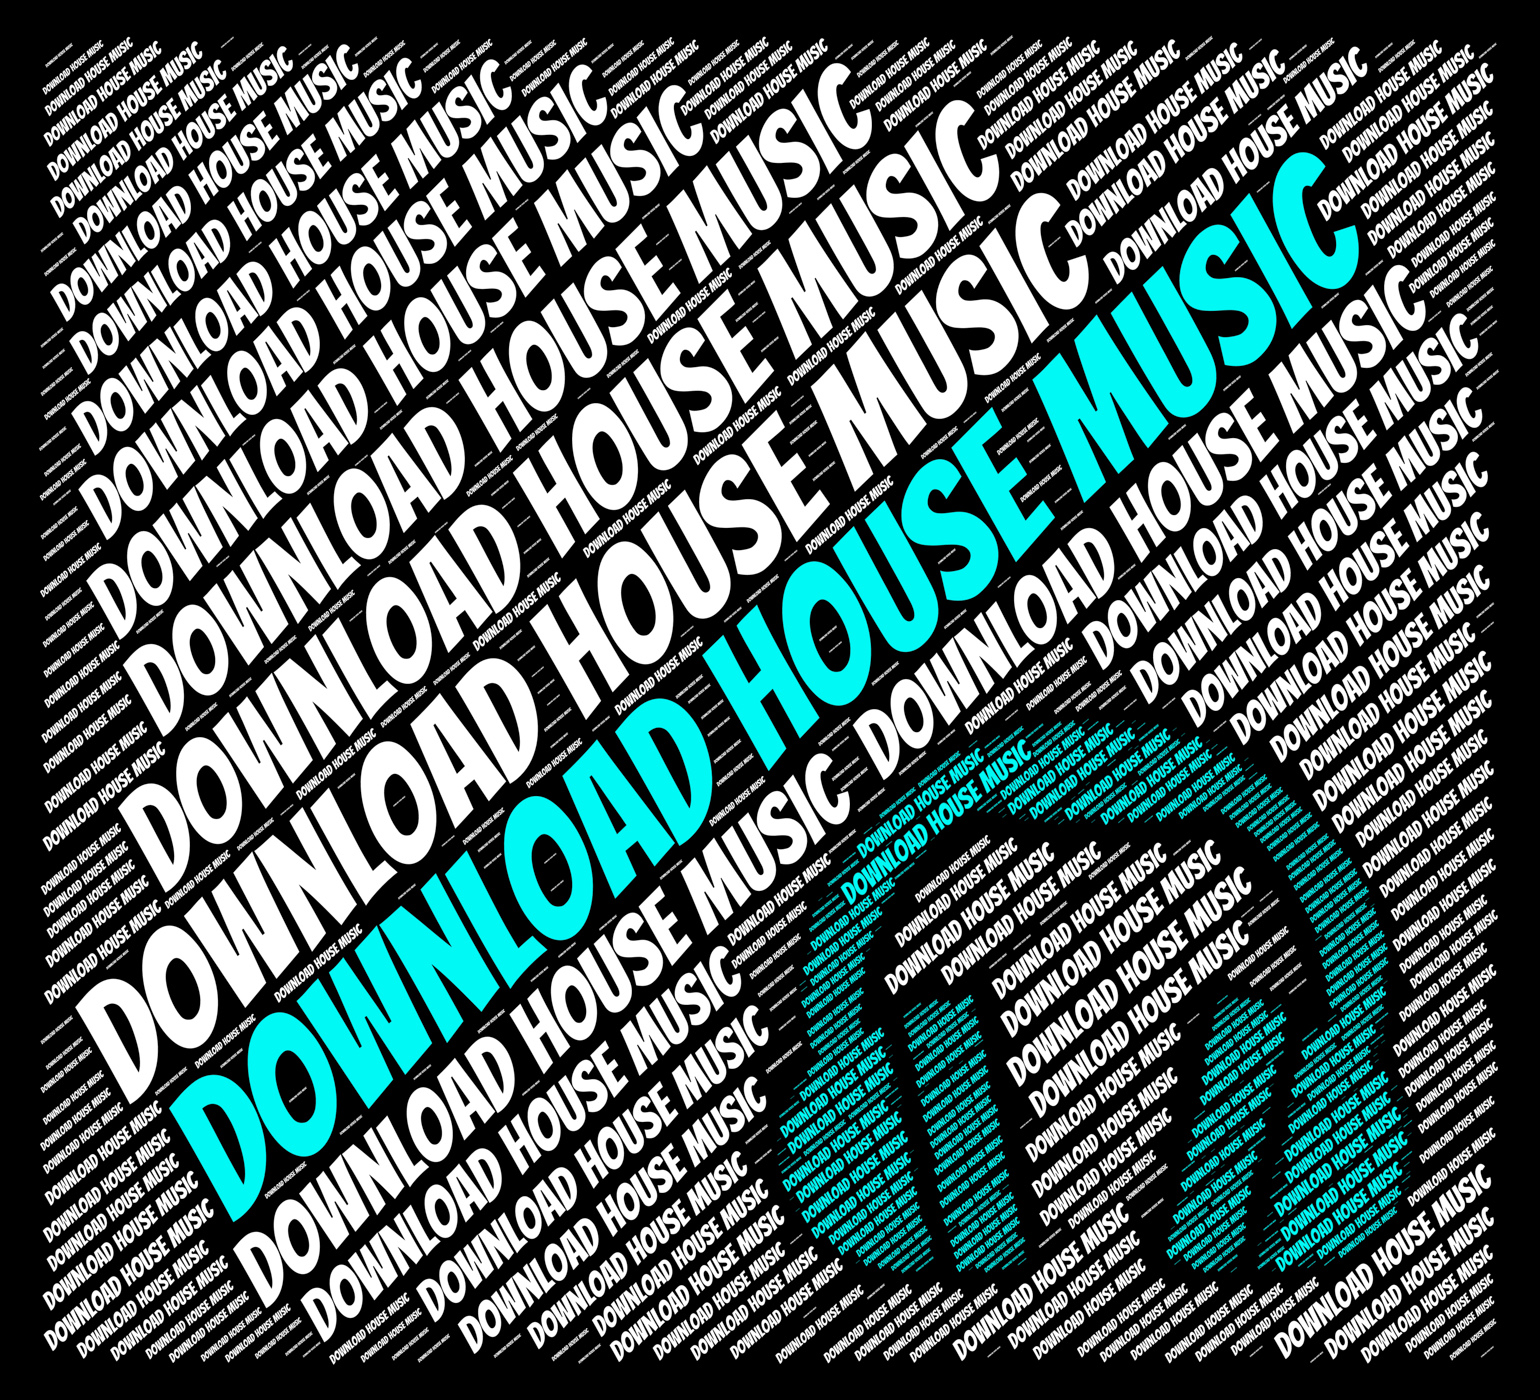 Download House Music Shows Sound Tracks And Dance, Acoustic, Internet, Soundtrack, Sound, HQ Photo